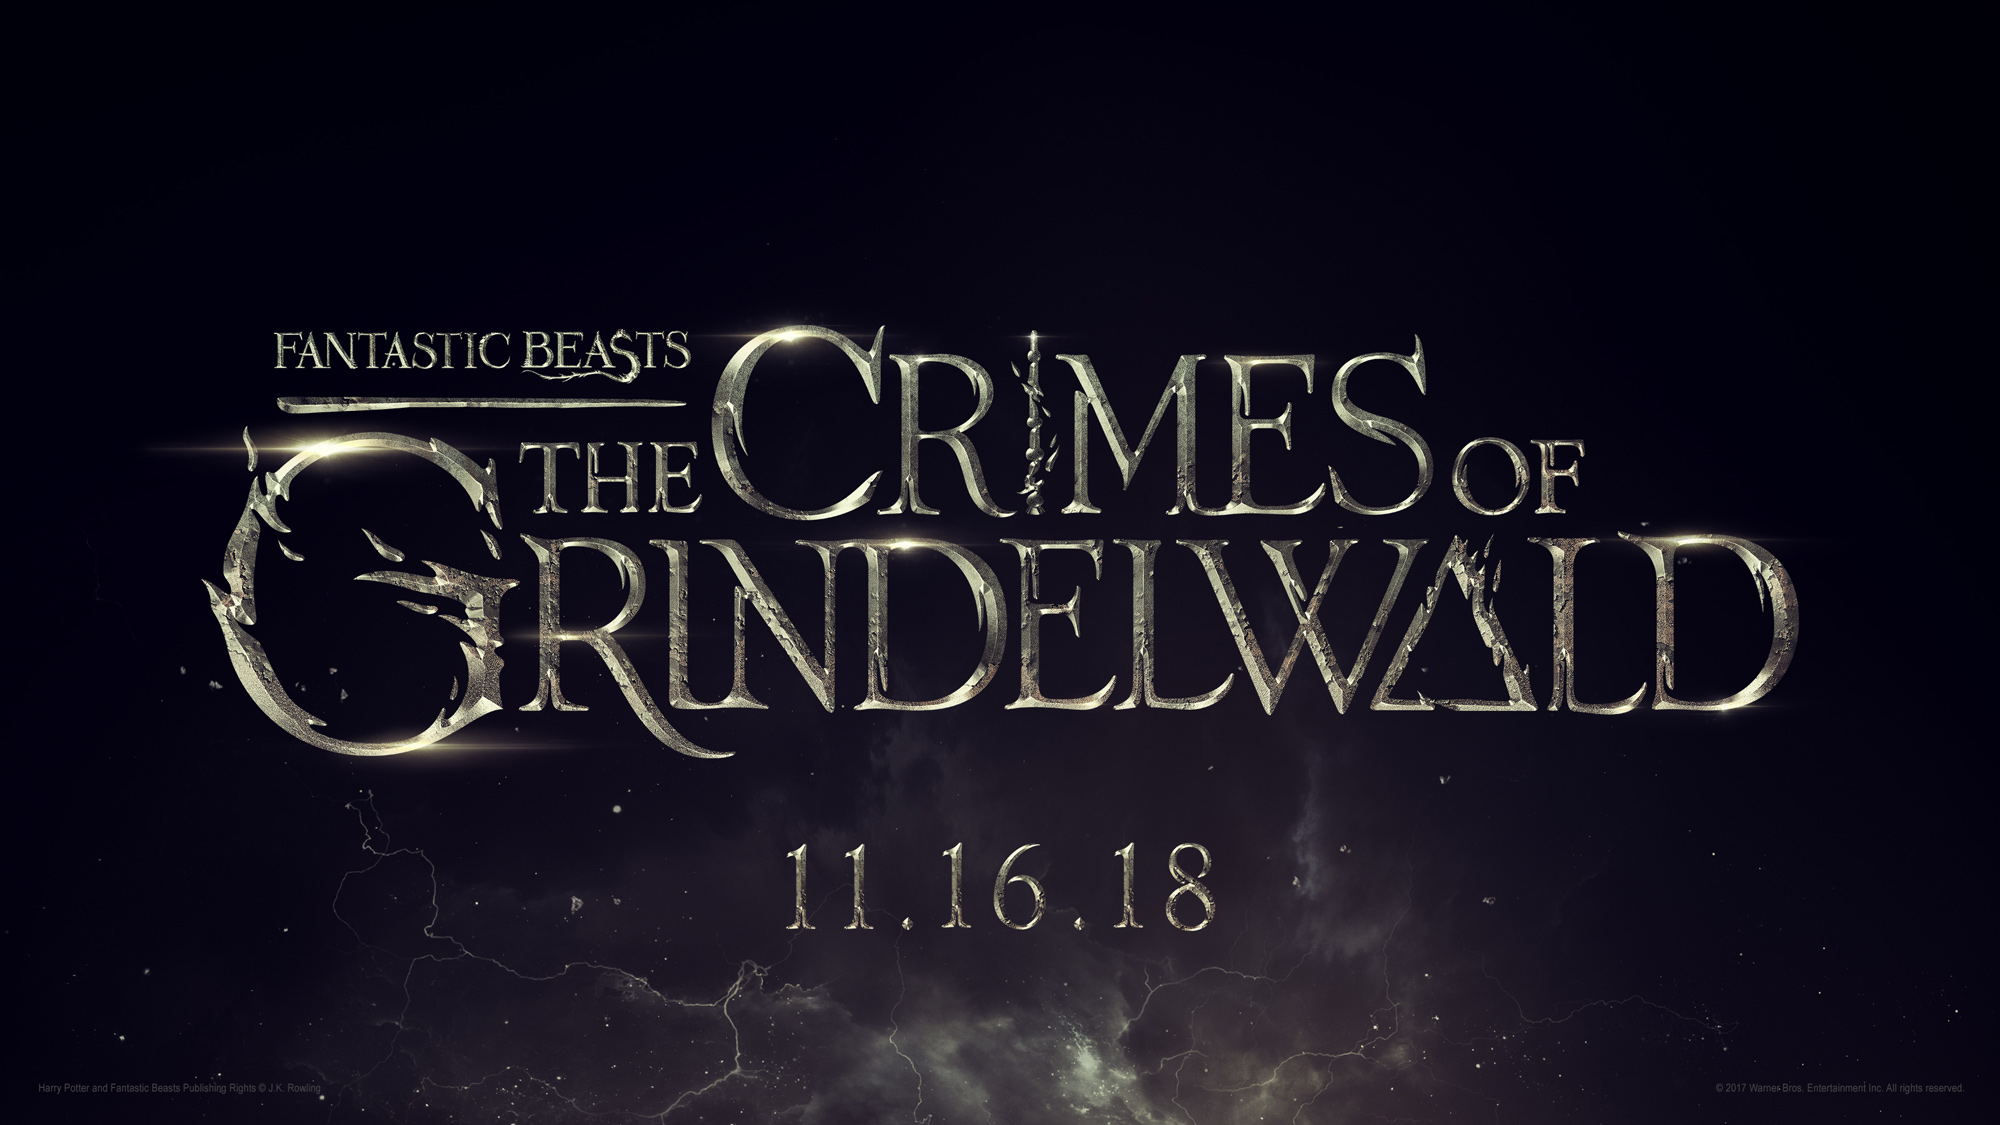 fantasticbeasts_crimeslogo_rendered.jpg